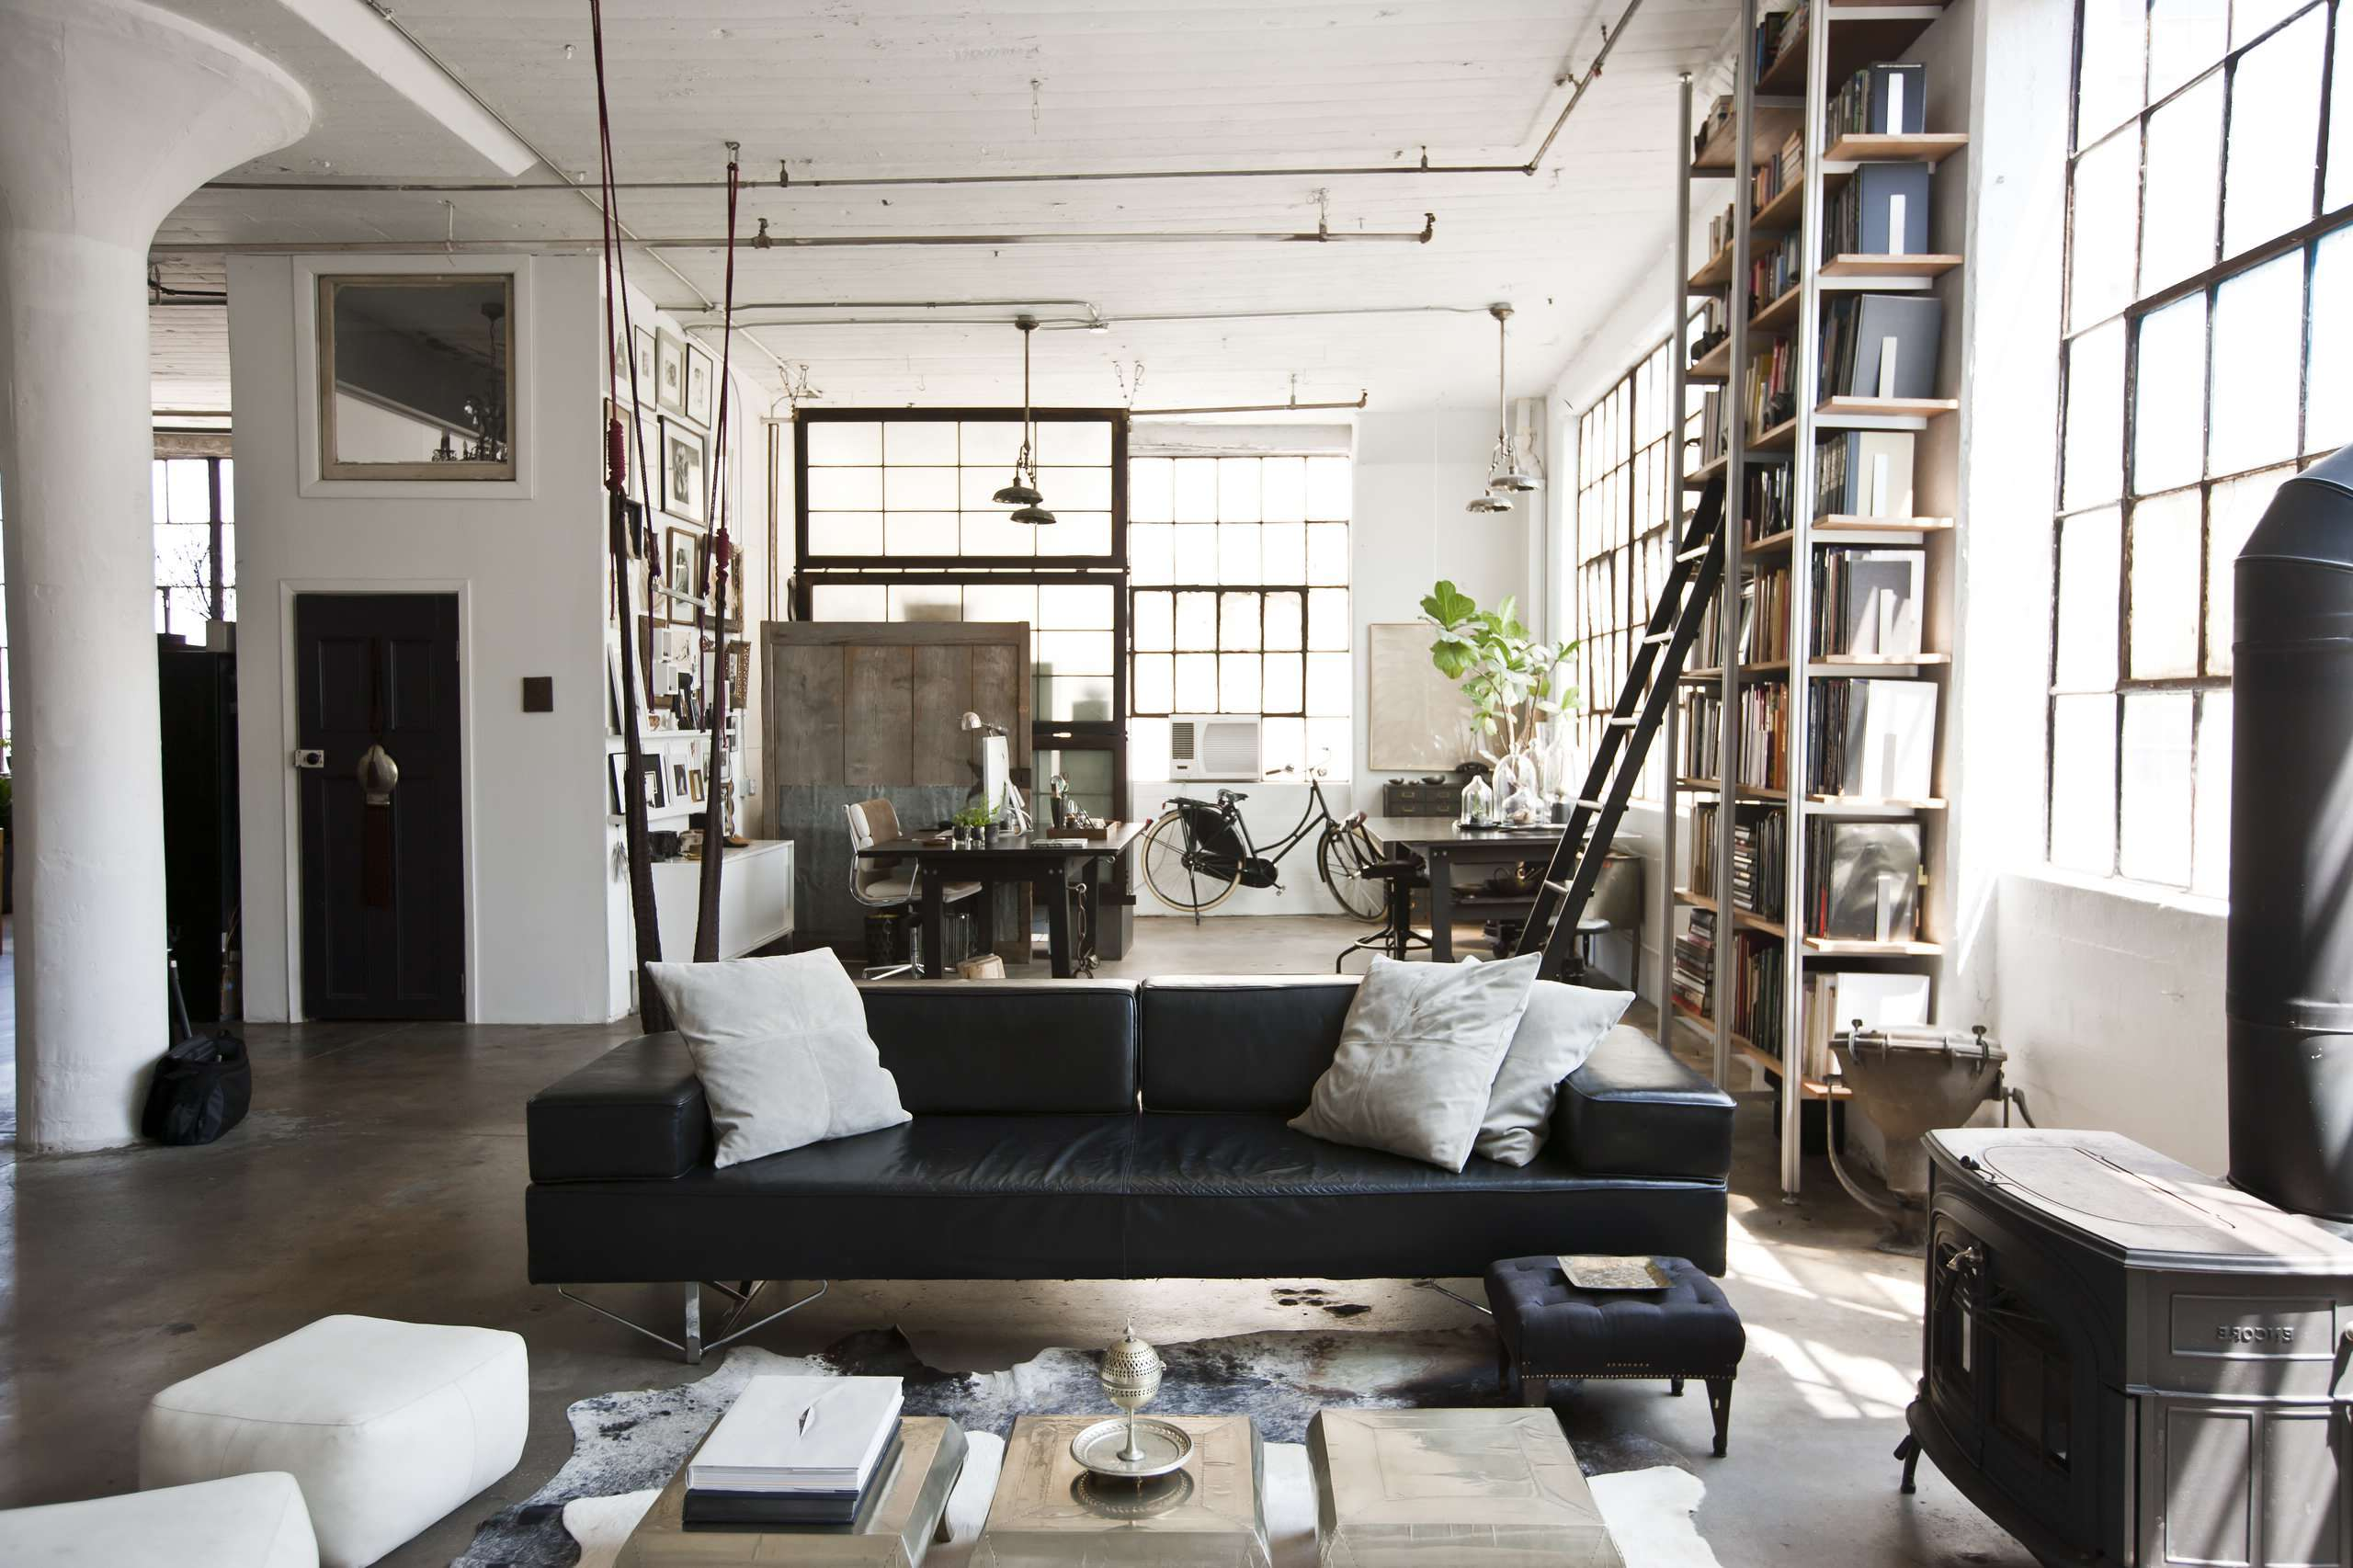 industrial chic 15 coole einrichtungsideen mit industrial m beln innendesign m bel zenideen. Black Bedroom Furniture Sets. Home Design Ideas